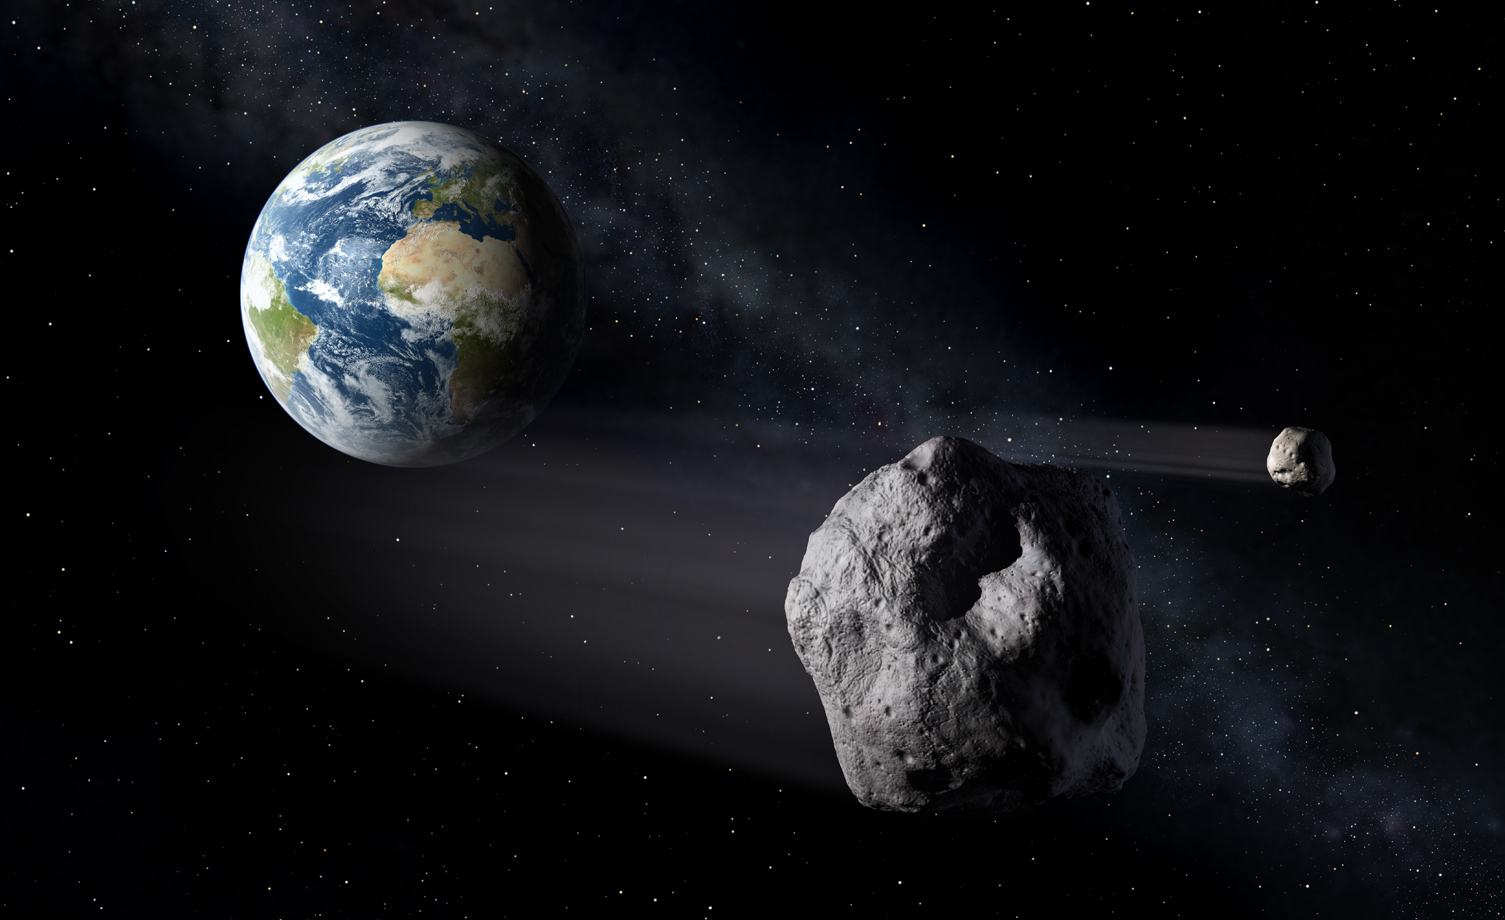 NASA Report: How to Defend Planet From Asteroids